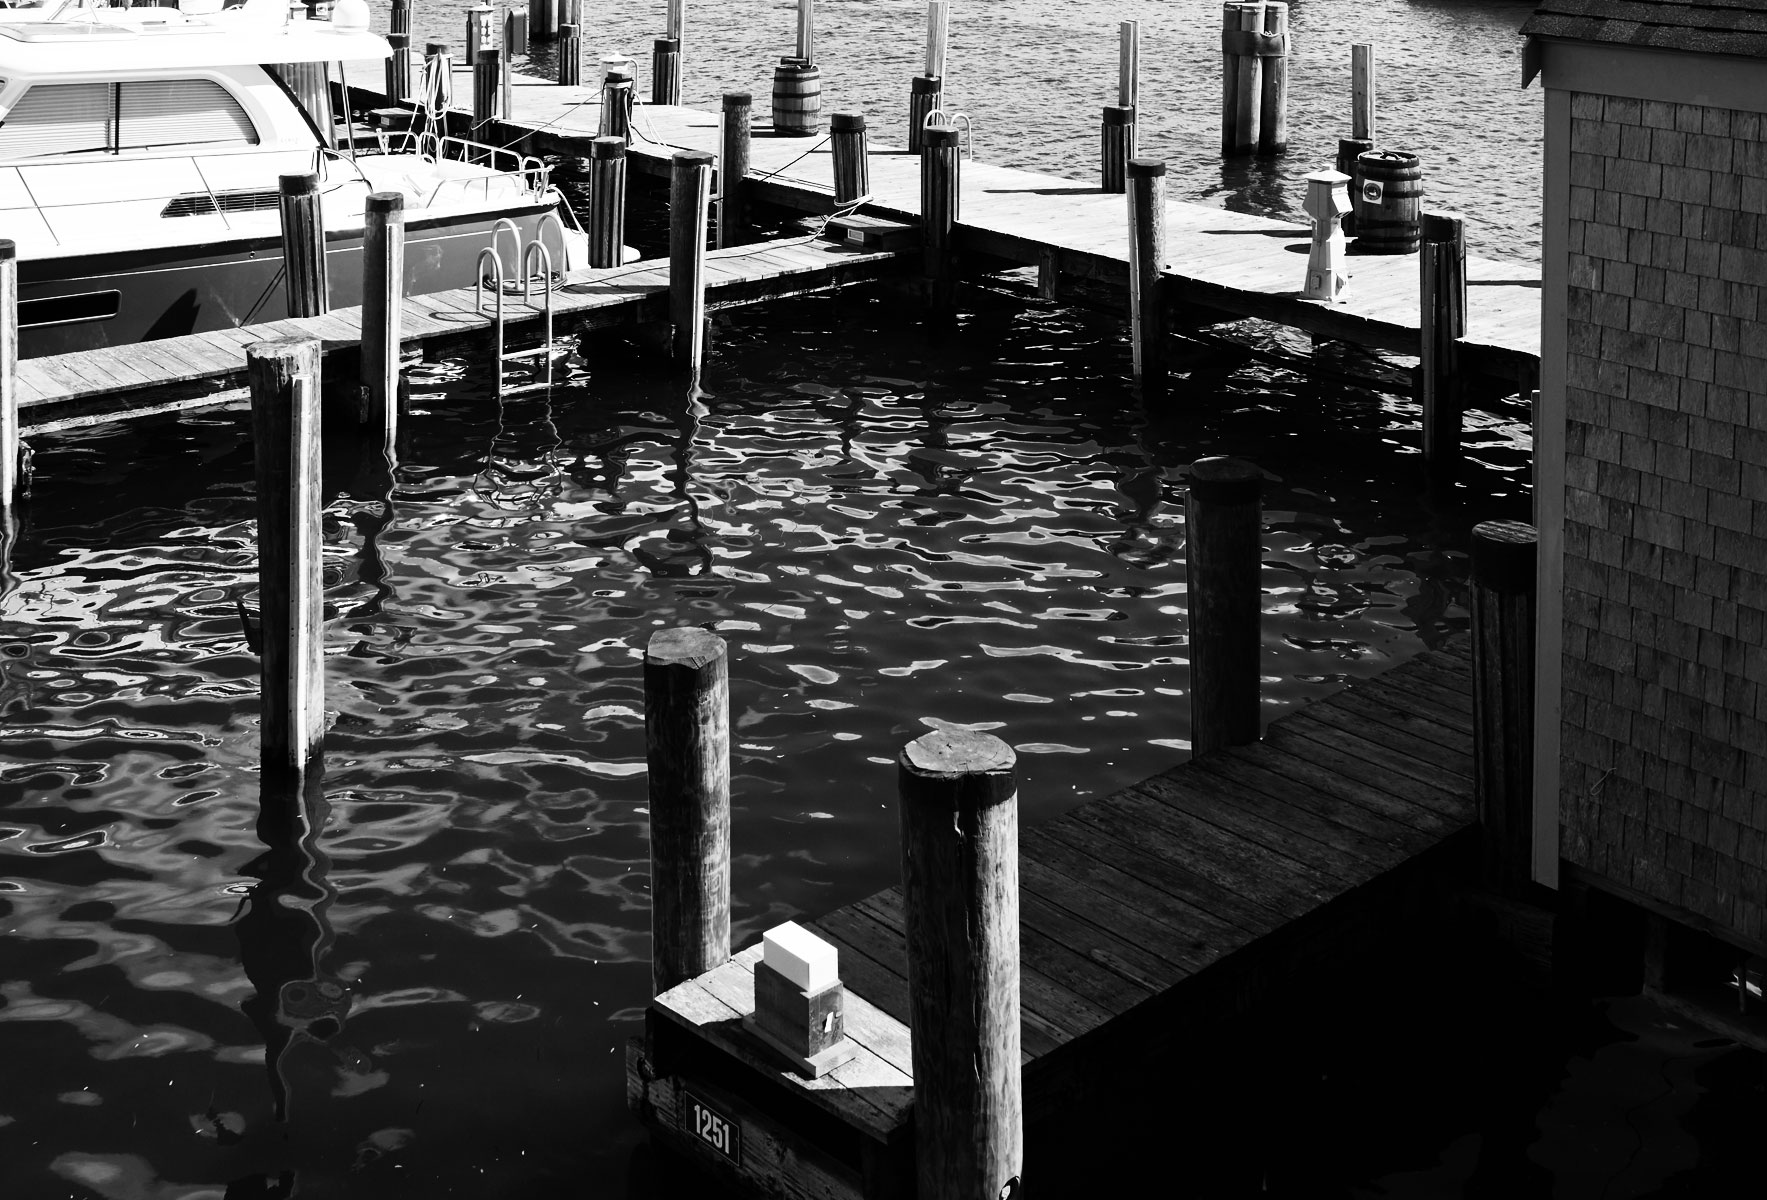 NANTUCKET_BOAT_BRASIN_055bw.jpg